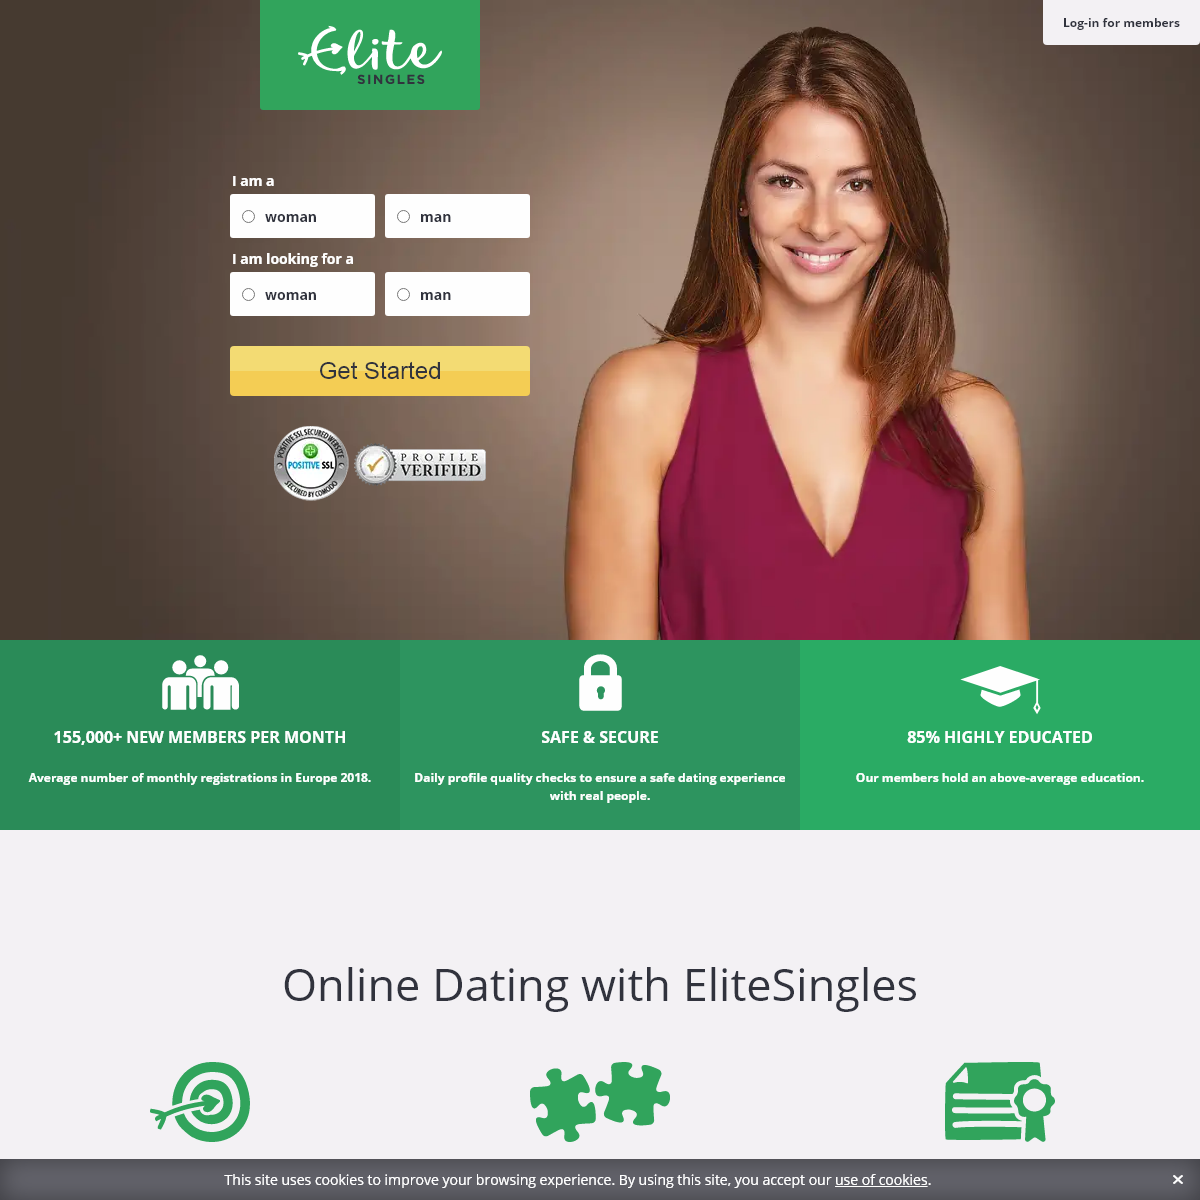 EliteSingles - One of the UK`s best dating sites for educated singles